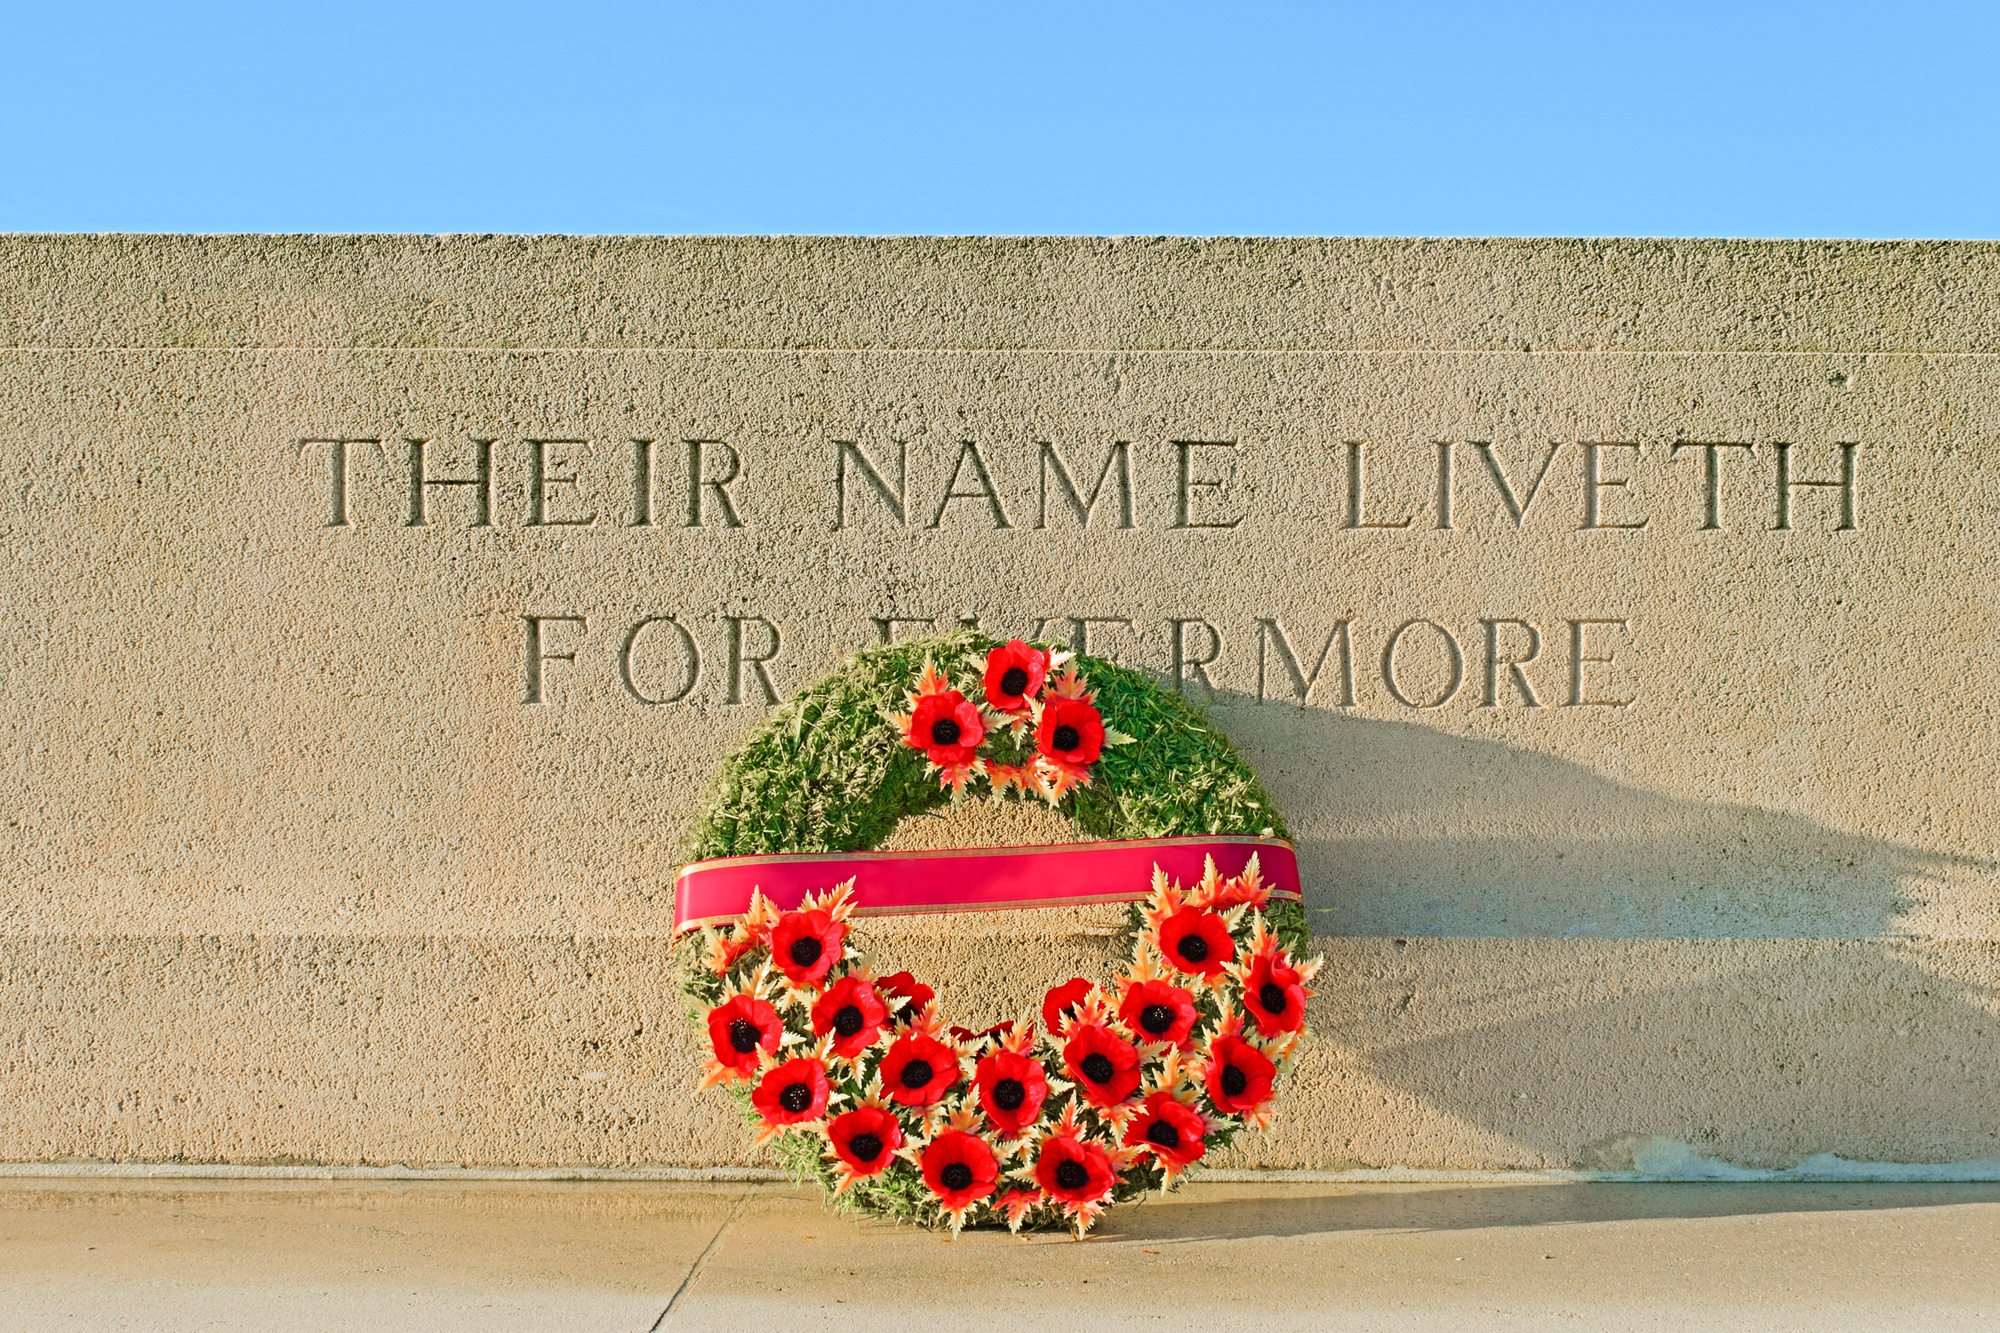 Monument of World War I with wreath of poppies